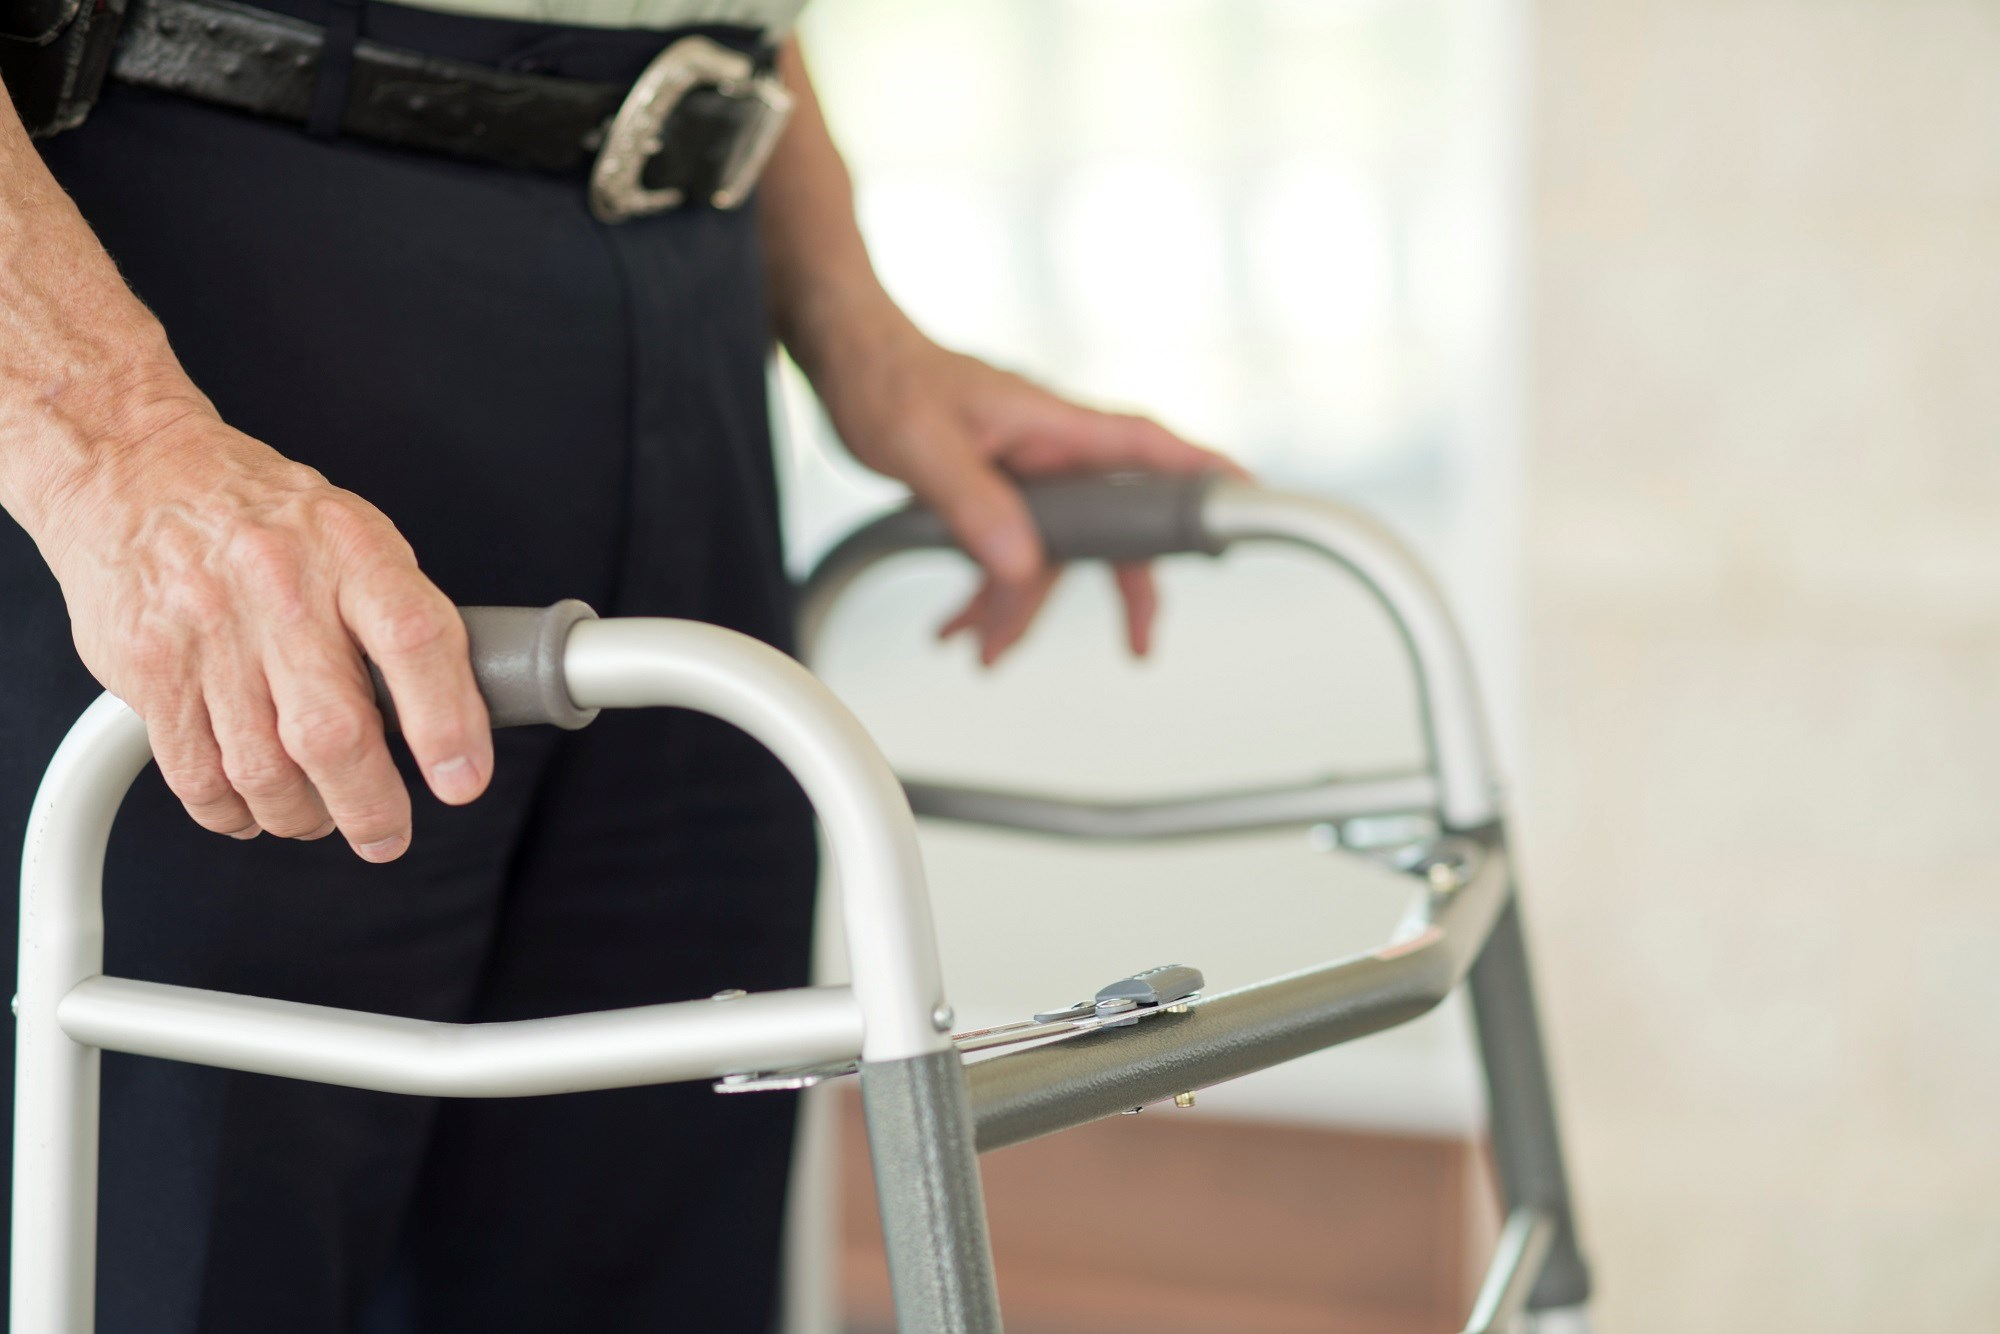 Investigators examined factors associated with mobility and walking restrictions in participants with multiple sclerosis.